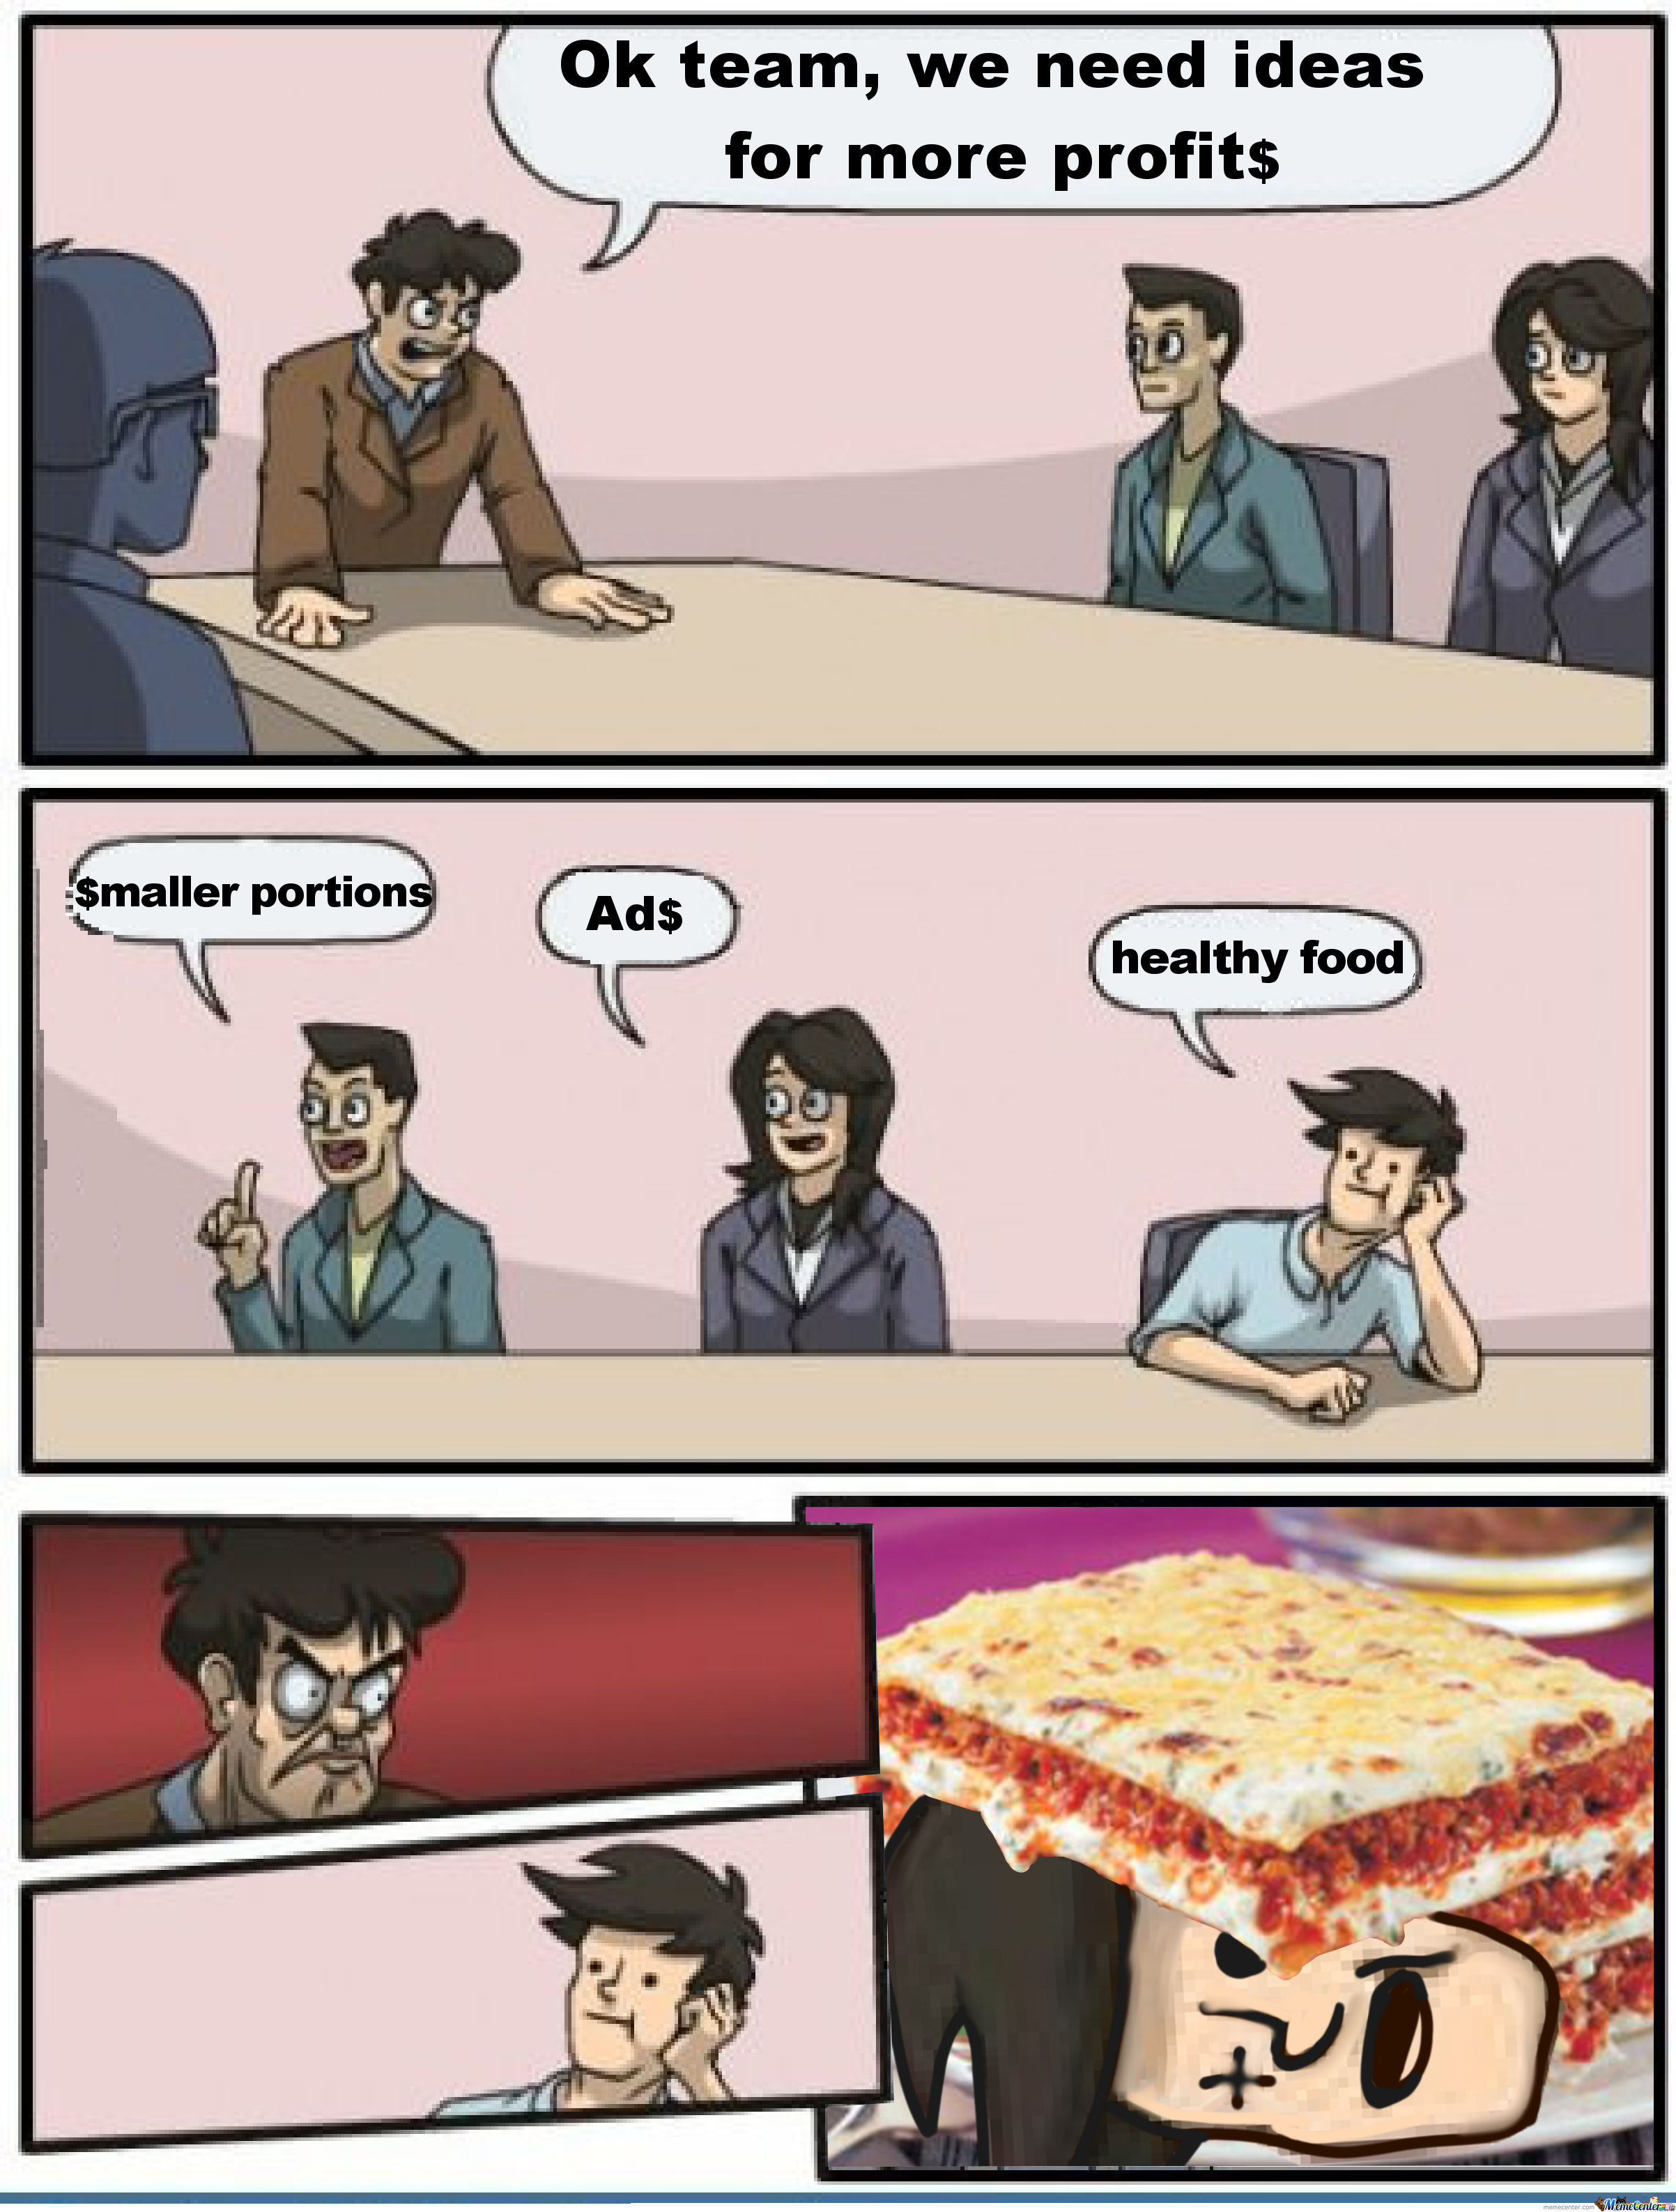 Findus Boardroom Suggestion